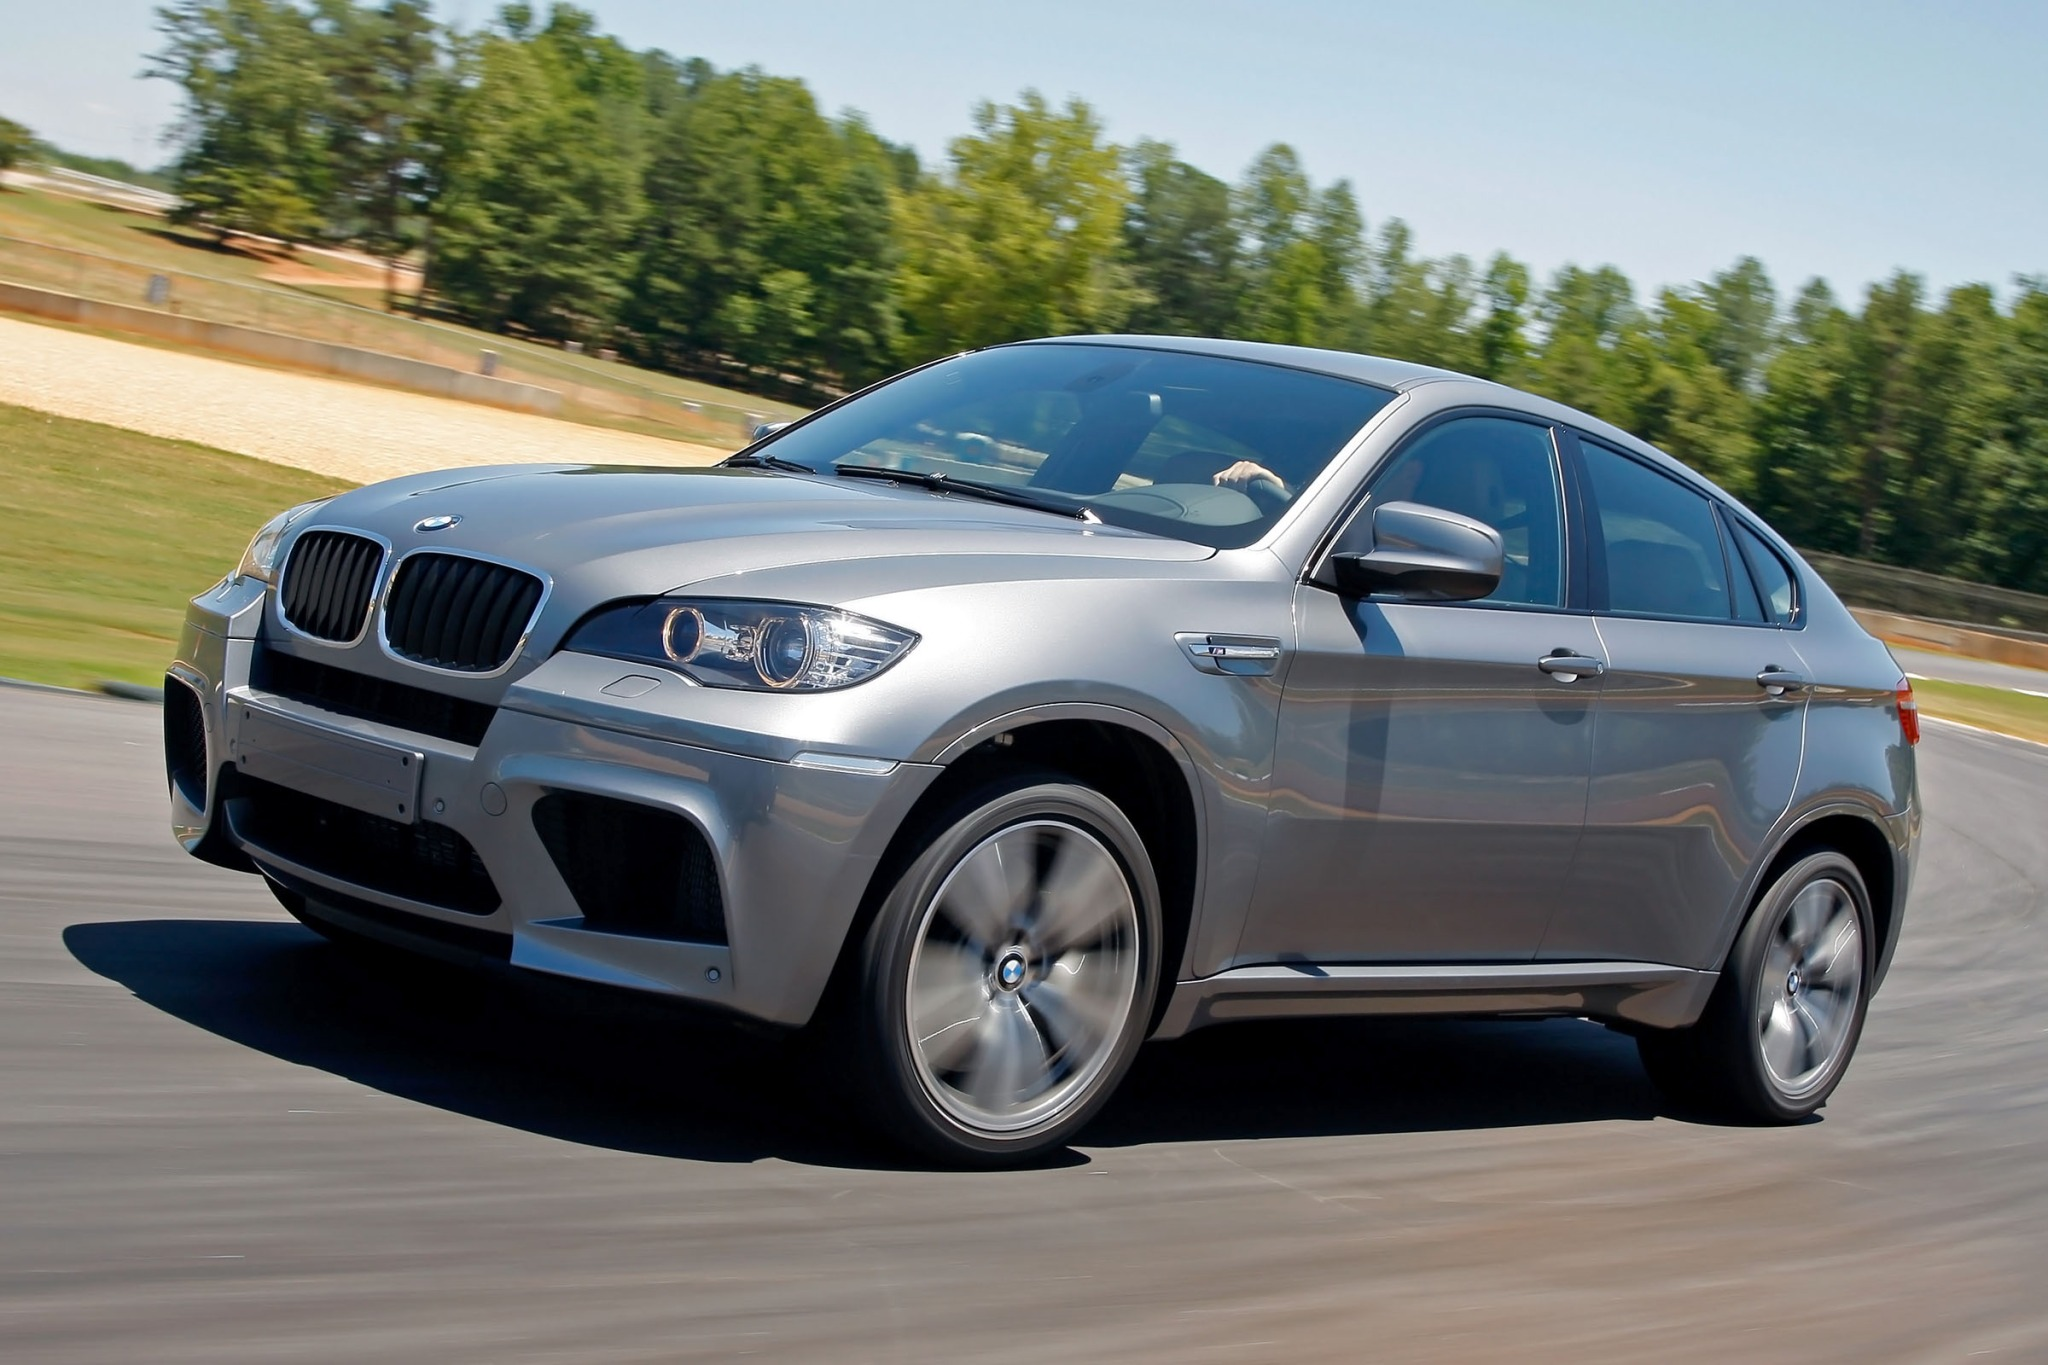 2012 BMW X6 M Gauge Clust interior #2